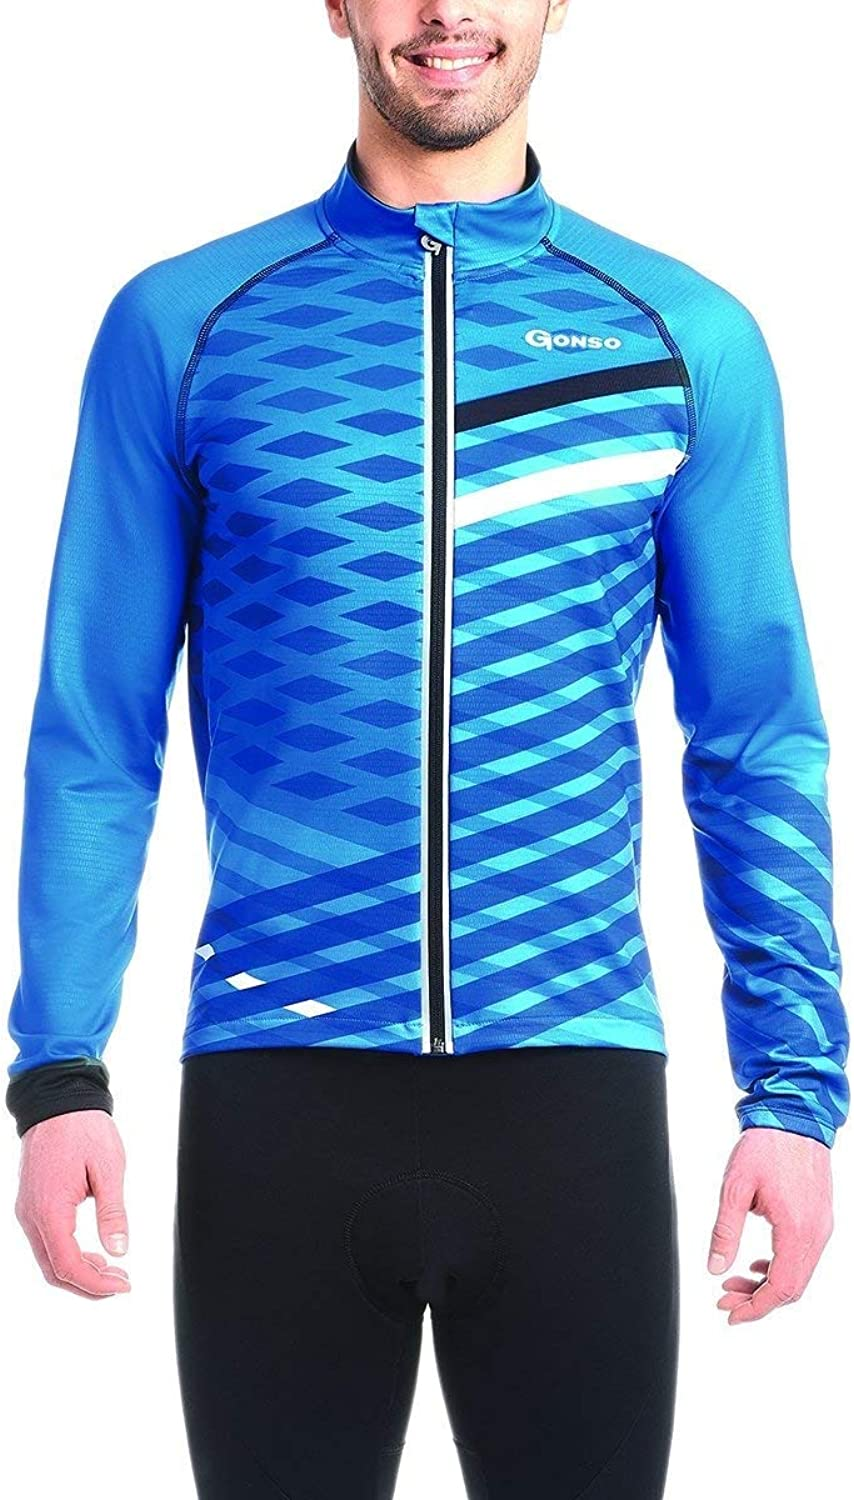 Gonso Mr. Gneis 18118 Cycling Jersey bluee